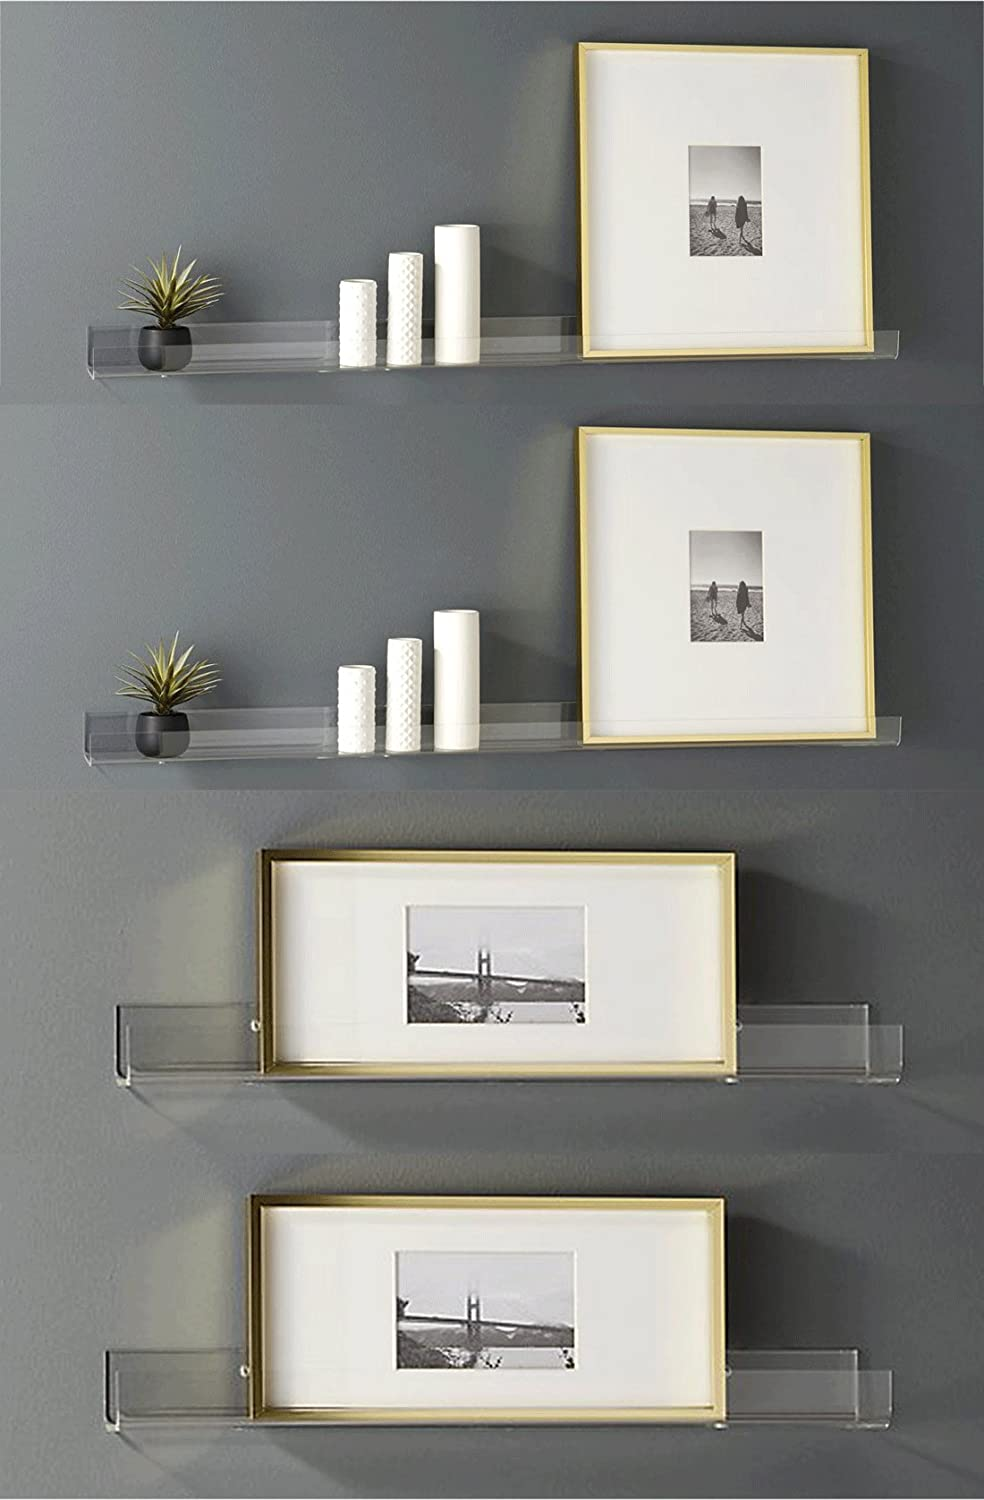 Sensational 4Pcs Clear Heavy Duty Floating Shelves 4 Pack 15 Inches Acrylic Bathroom Shelf Sets Contemporary Cosmetics Makeup Organizer Storage Shelves Download Free Architecture Designs Embacsunscenecom